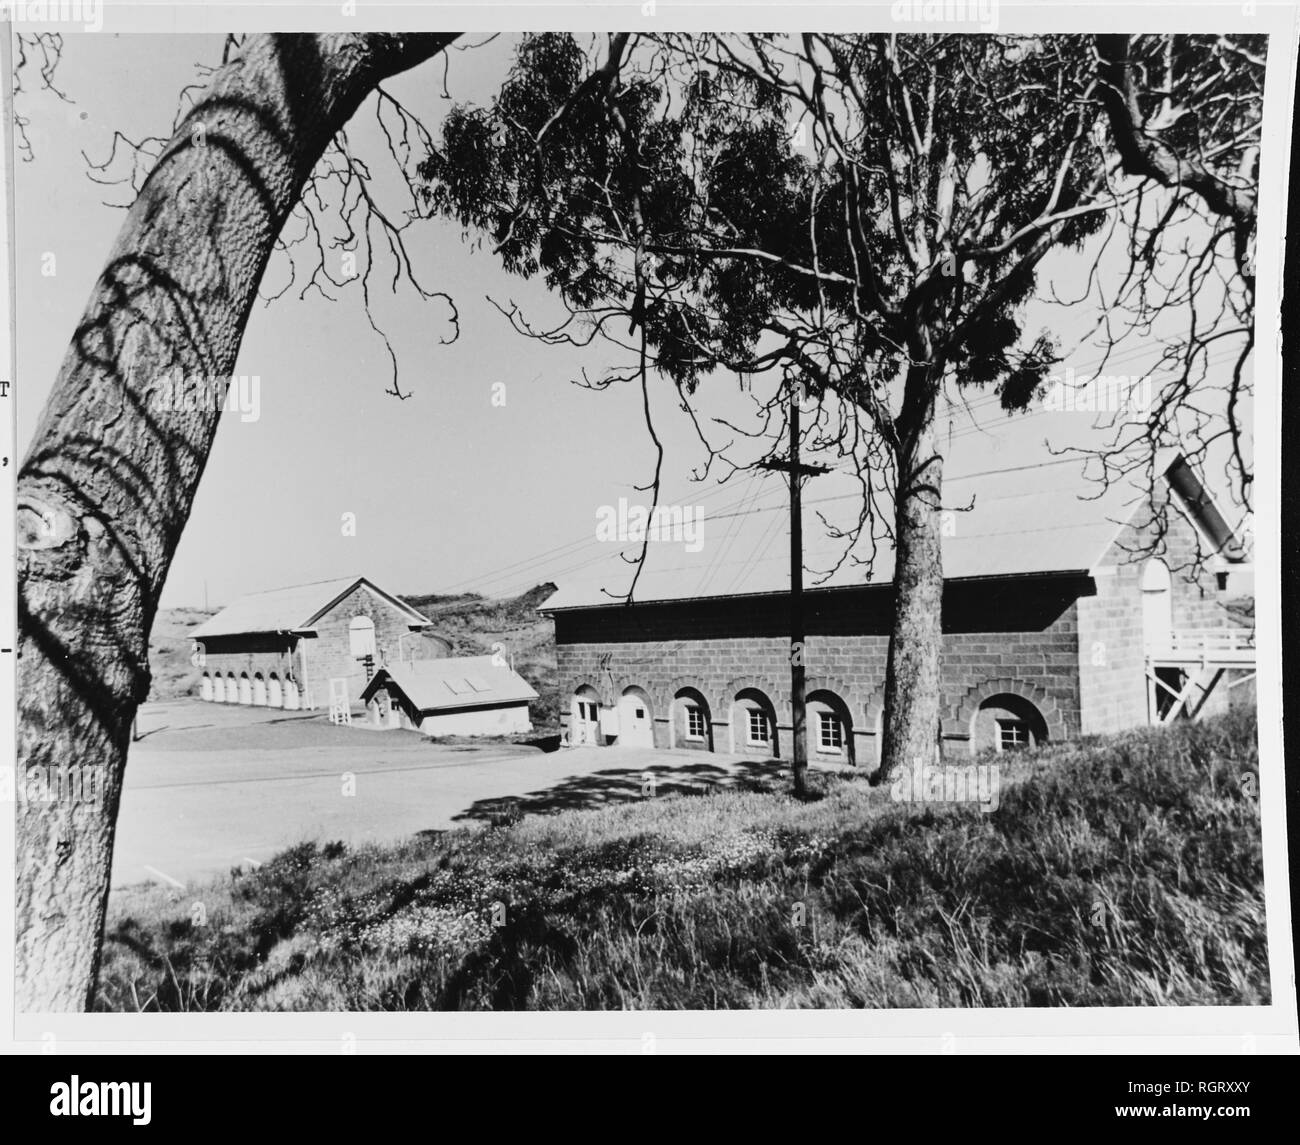 Camel barns at the Benicia Arsenal, photographed in September 1967 by Aero Photographers of Sausalito, California. In the 1850s the U.S. Government brought dromedaries to the West for experimentation in logistics. Lieutenant Edward F. Beale, USN, used them in survey work. In November 1863 thirty-four of the animals were moved from southern California to the Naval Arsenal at Benicia, where they were sold at auction on 26 February 1864. This photograph shows the buildings in which they were kept. Whether the buildings have been bricked over, or restored, is unknown.  Courtesy of Benicia Industri - Stock Image